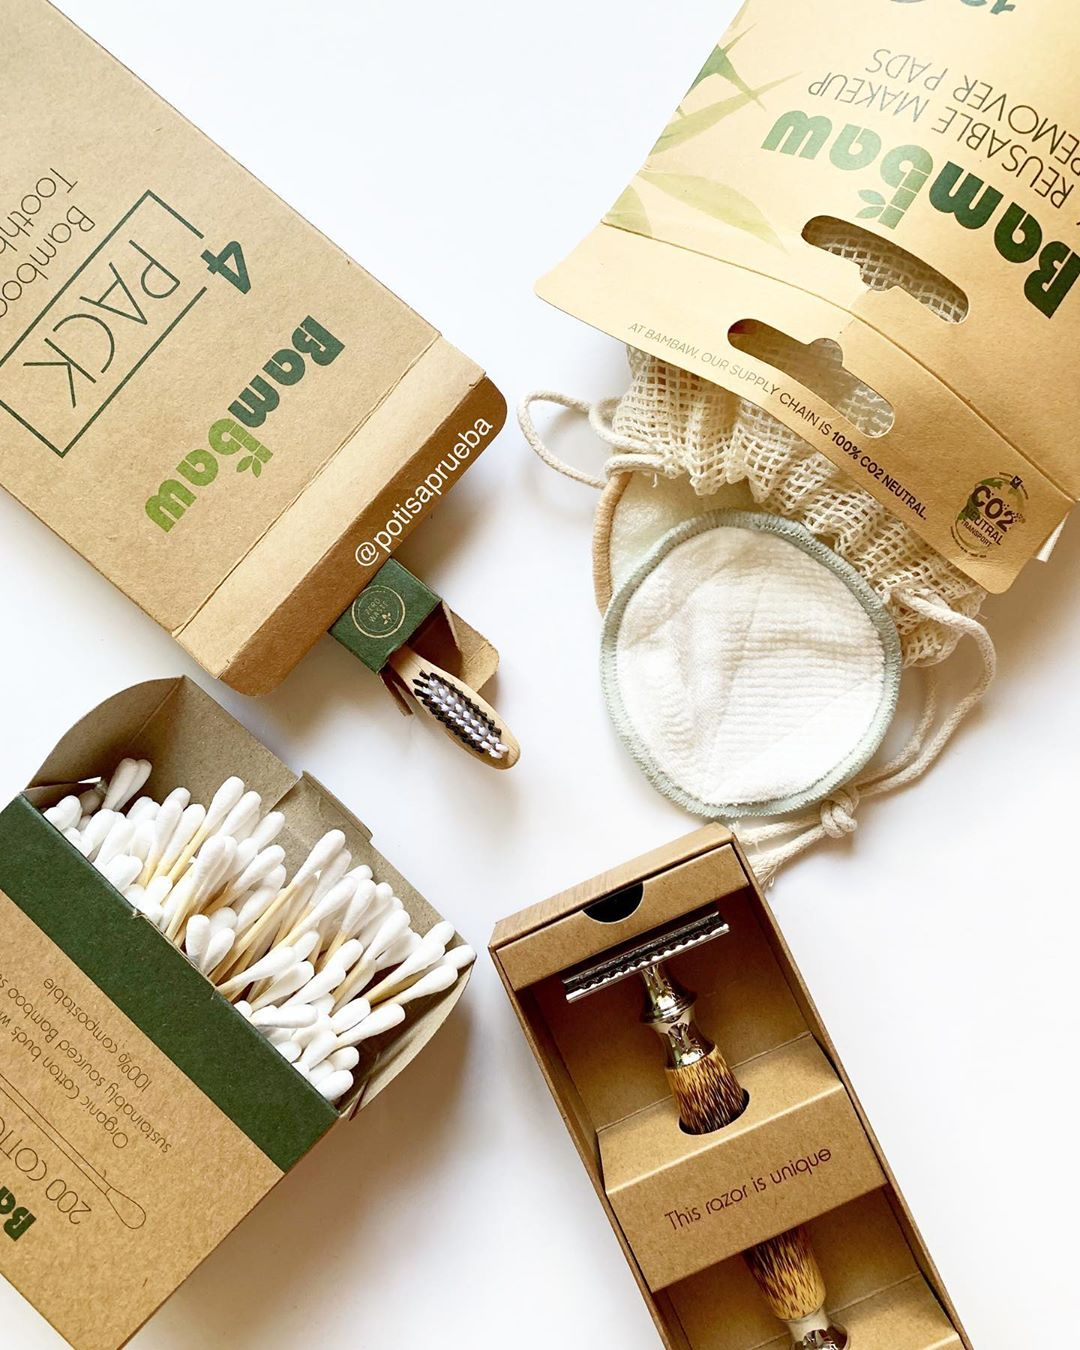 Bambaw products